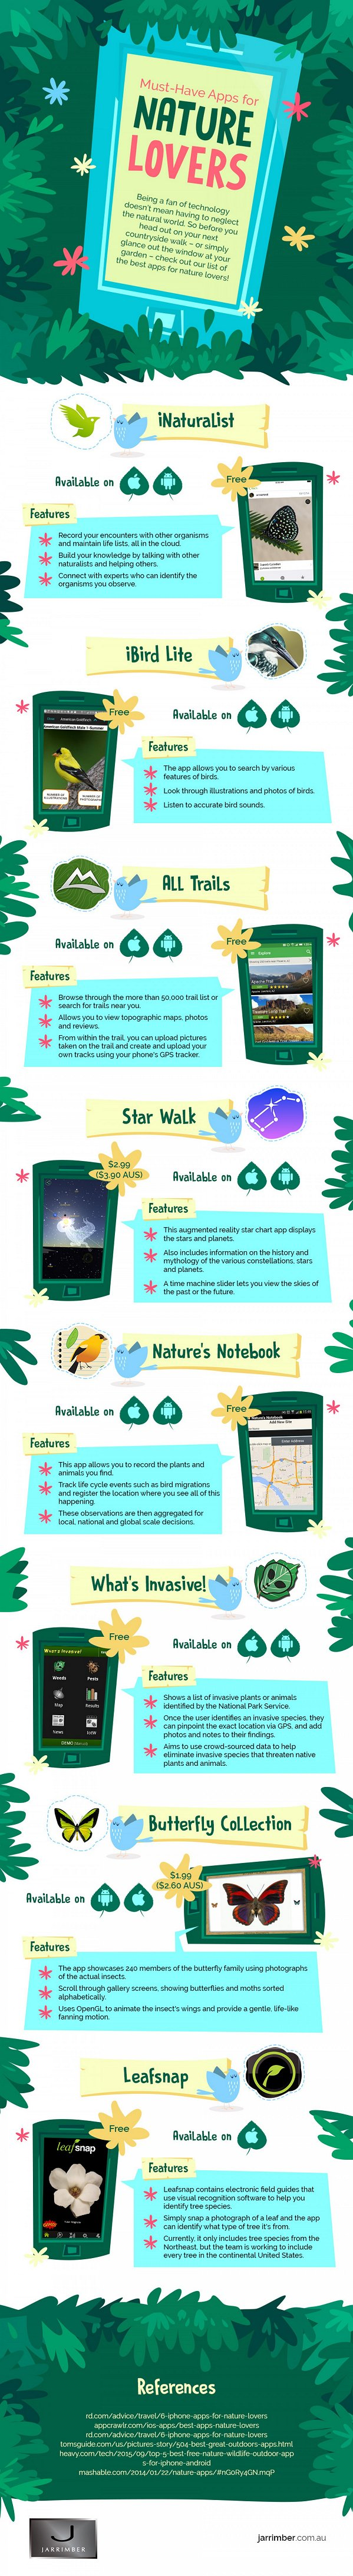 nature-lovers-apps